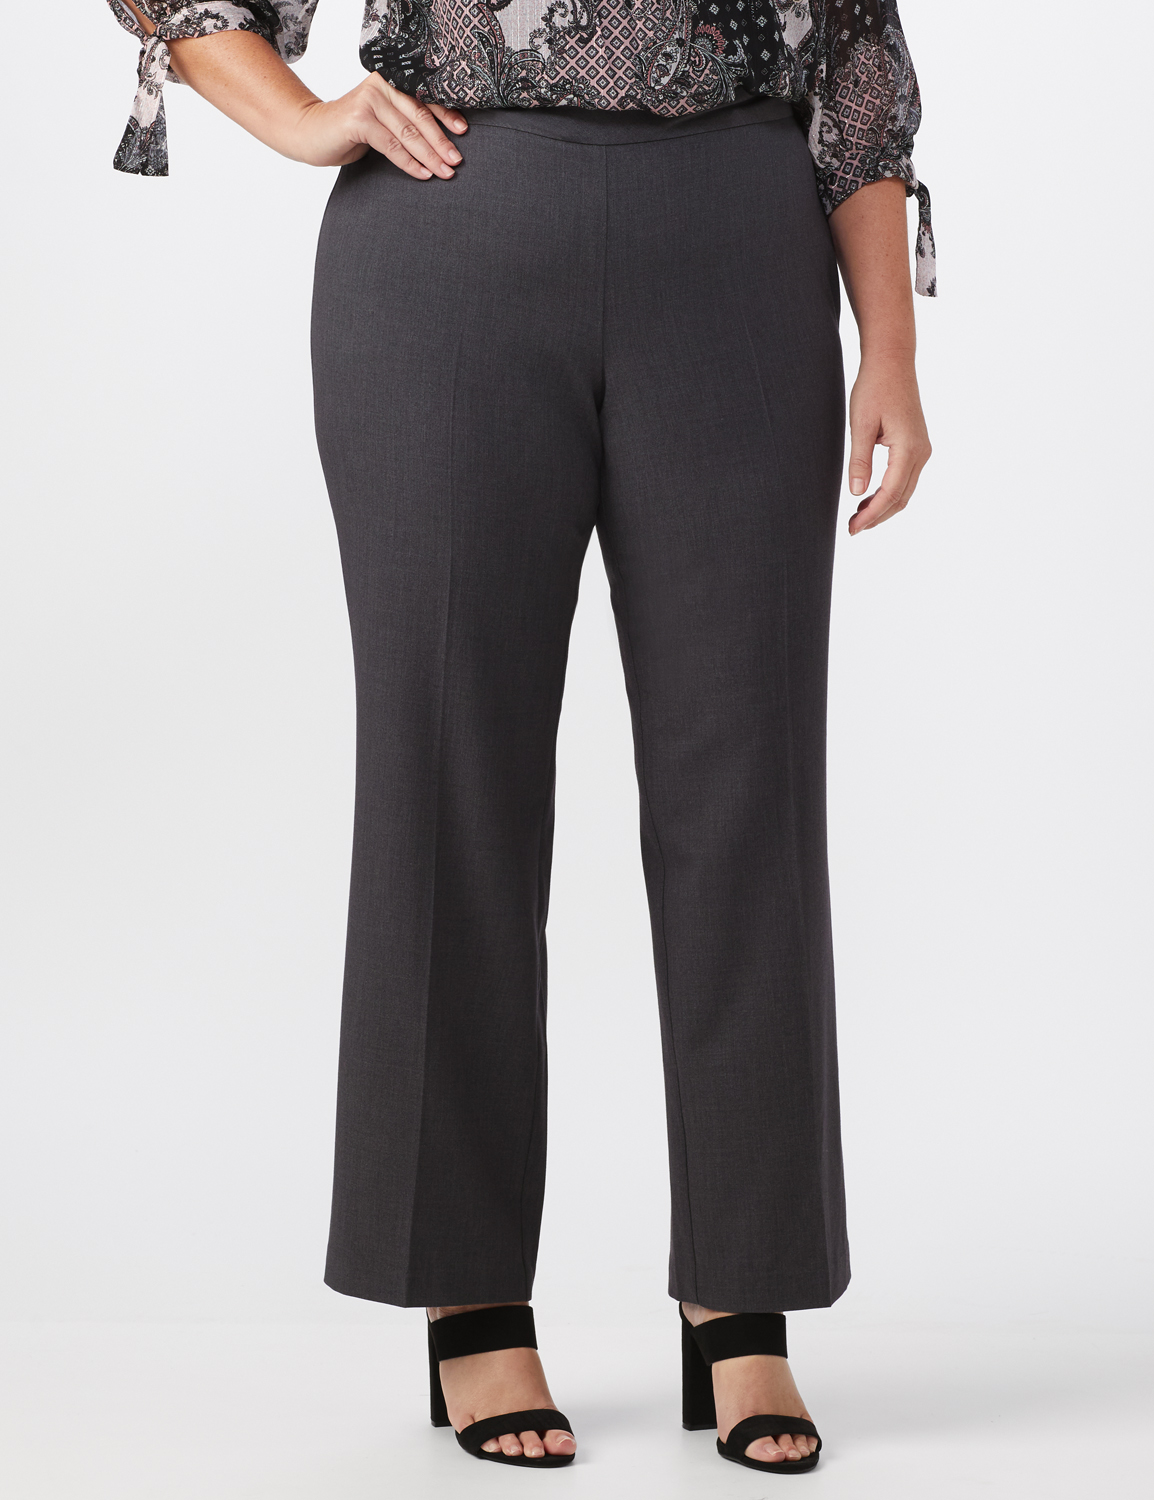 Roz & Ali Plus Secret Agent Tummy Control Pull On Pants - Average Length-Plus -grey - Front